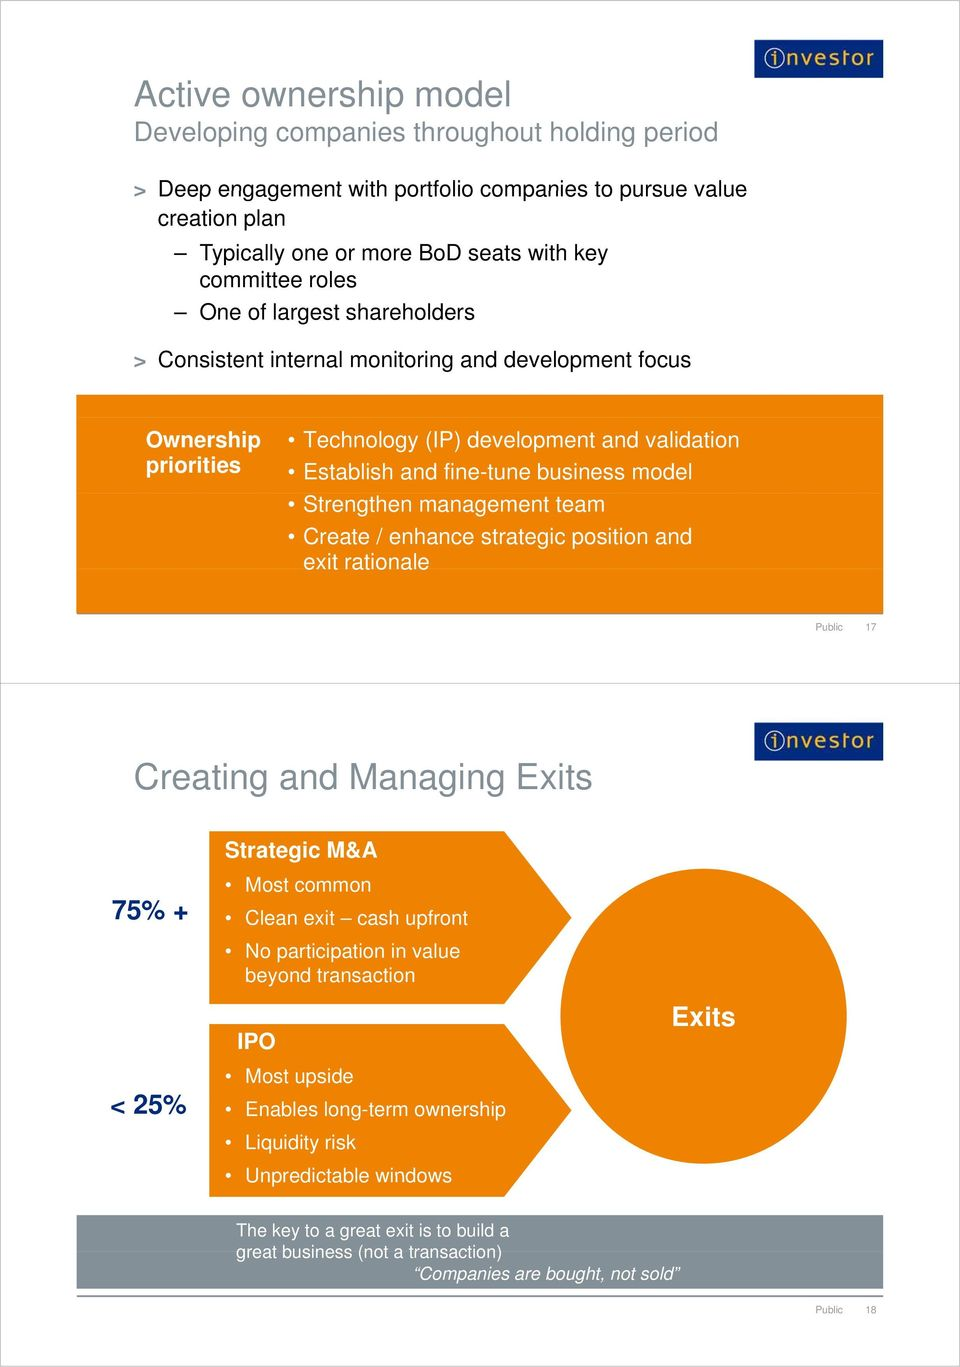 management team Create / enhance strategic position and exit rationale Public 17 Creating and Managing Exits 75% + Strategic M&A Most common Clean exit cash upfront No participation in value beyond